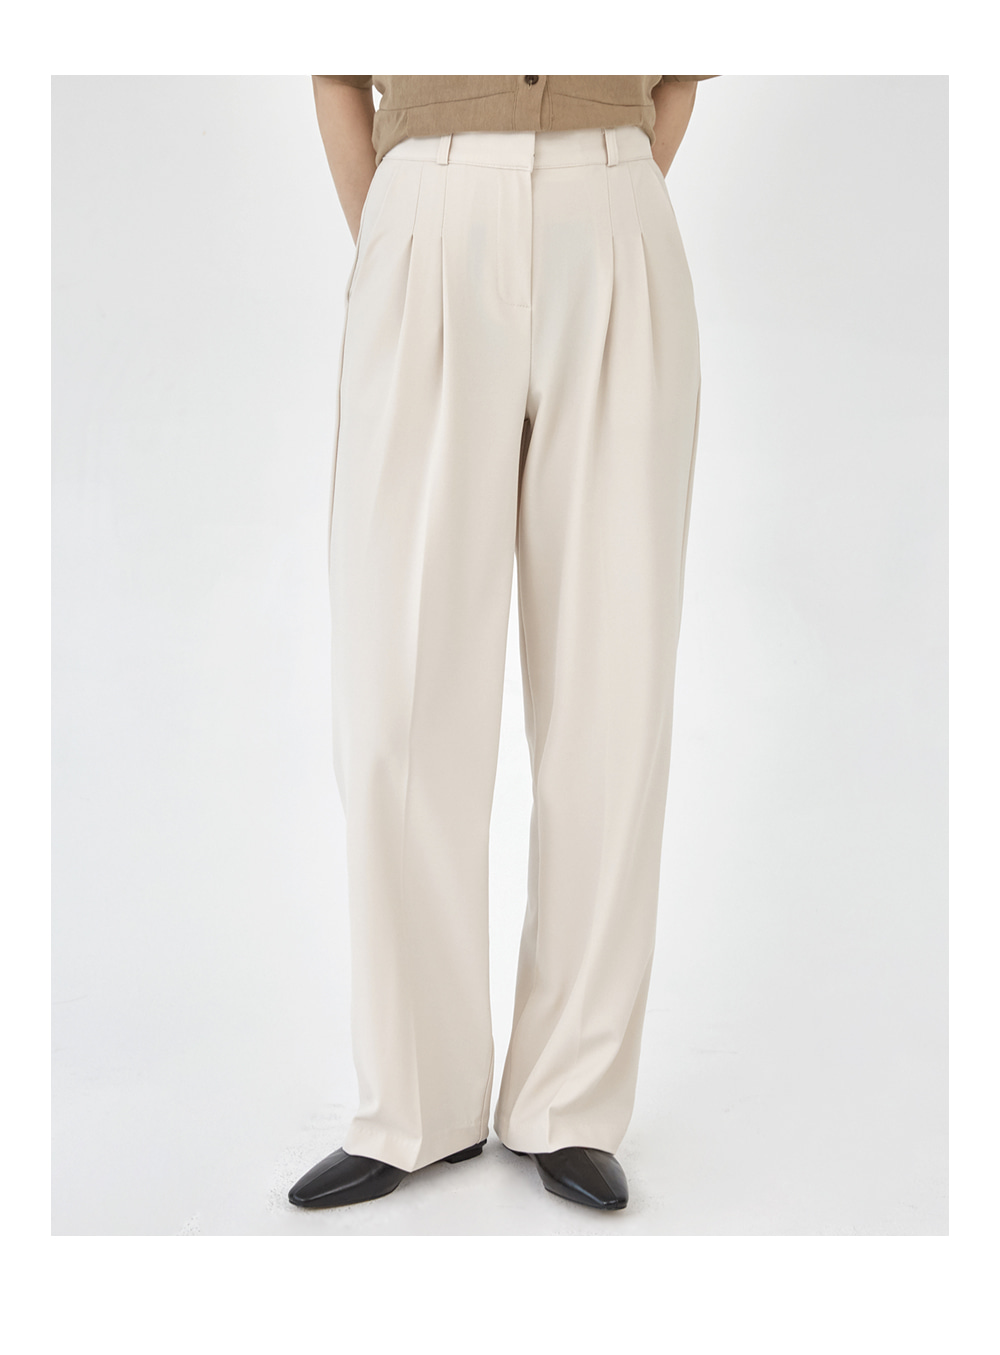 pintuck slim straight fit slacks (s, m, l)